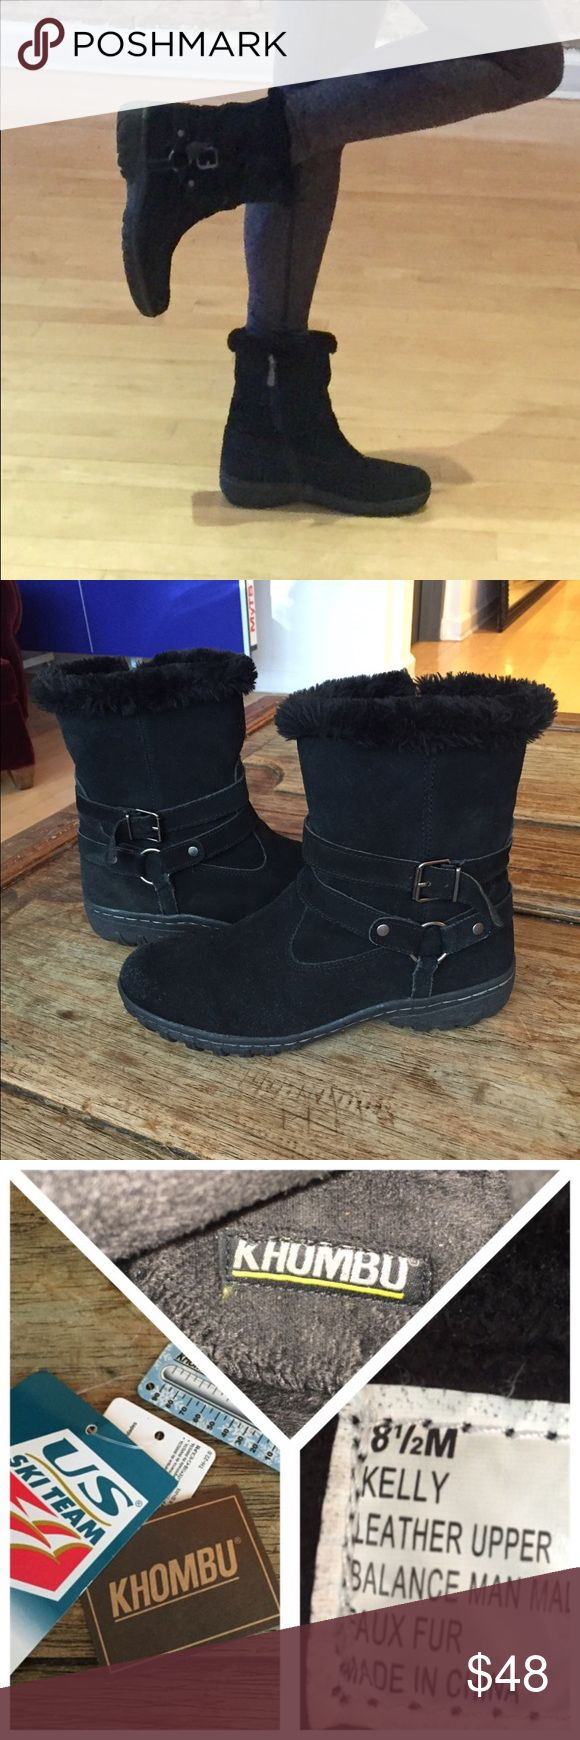 🌂Worn  twice, great condition all weather boots🌂 ☔️⛄️KHOMBU all weather boots, super cute and comfortable. These have been worn twice and are in great condition. There is a tiny mark on one of the straps that is a little bit of glue that I couldn't get to come off. Please see photos⛄️☔️ Khombu Shoes Ankle Boots & Booties